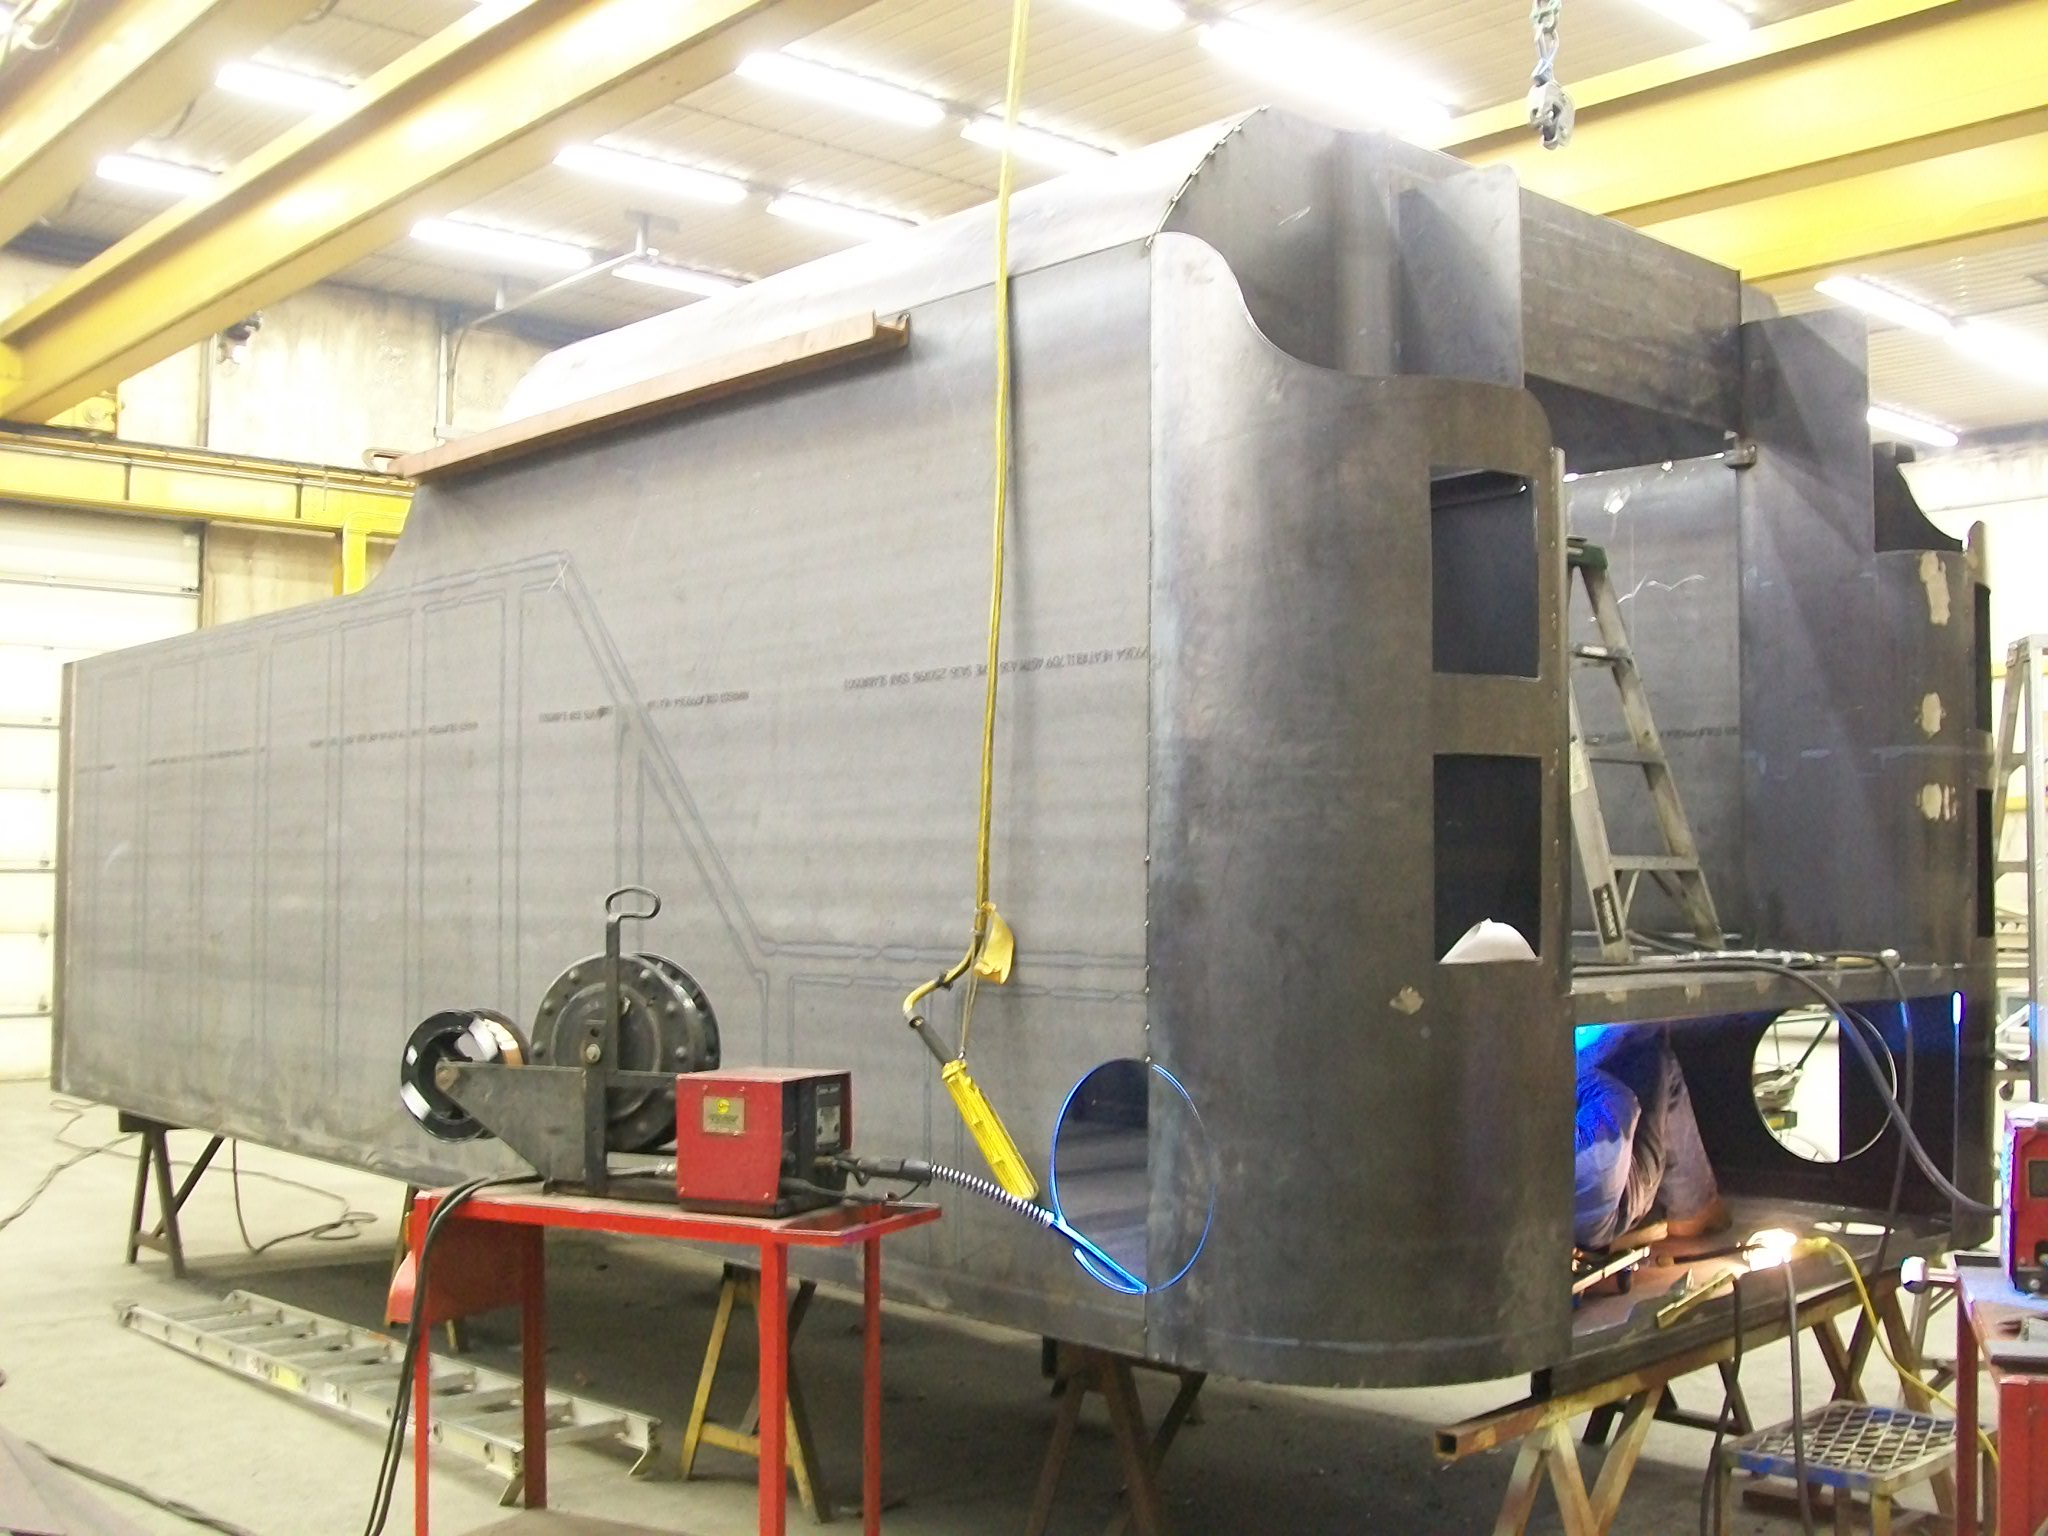 New C&NW 1385 tender tank under construction at DRM Industries. March 1, 2012. Photo by DRM Industries